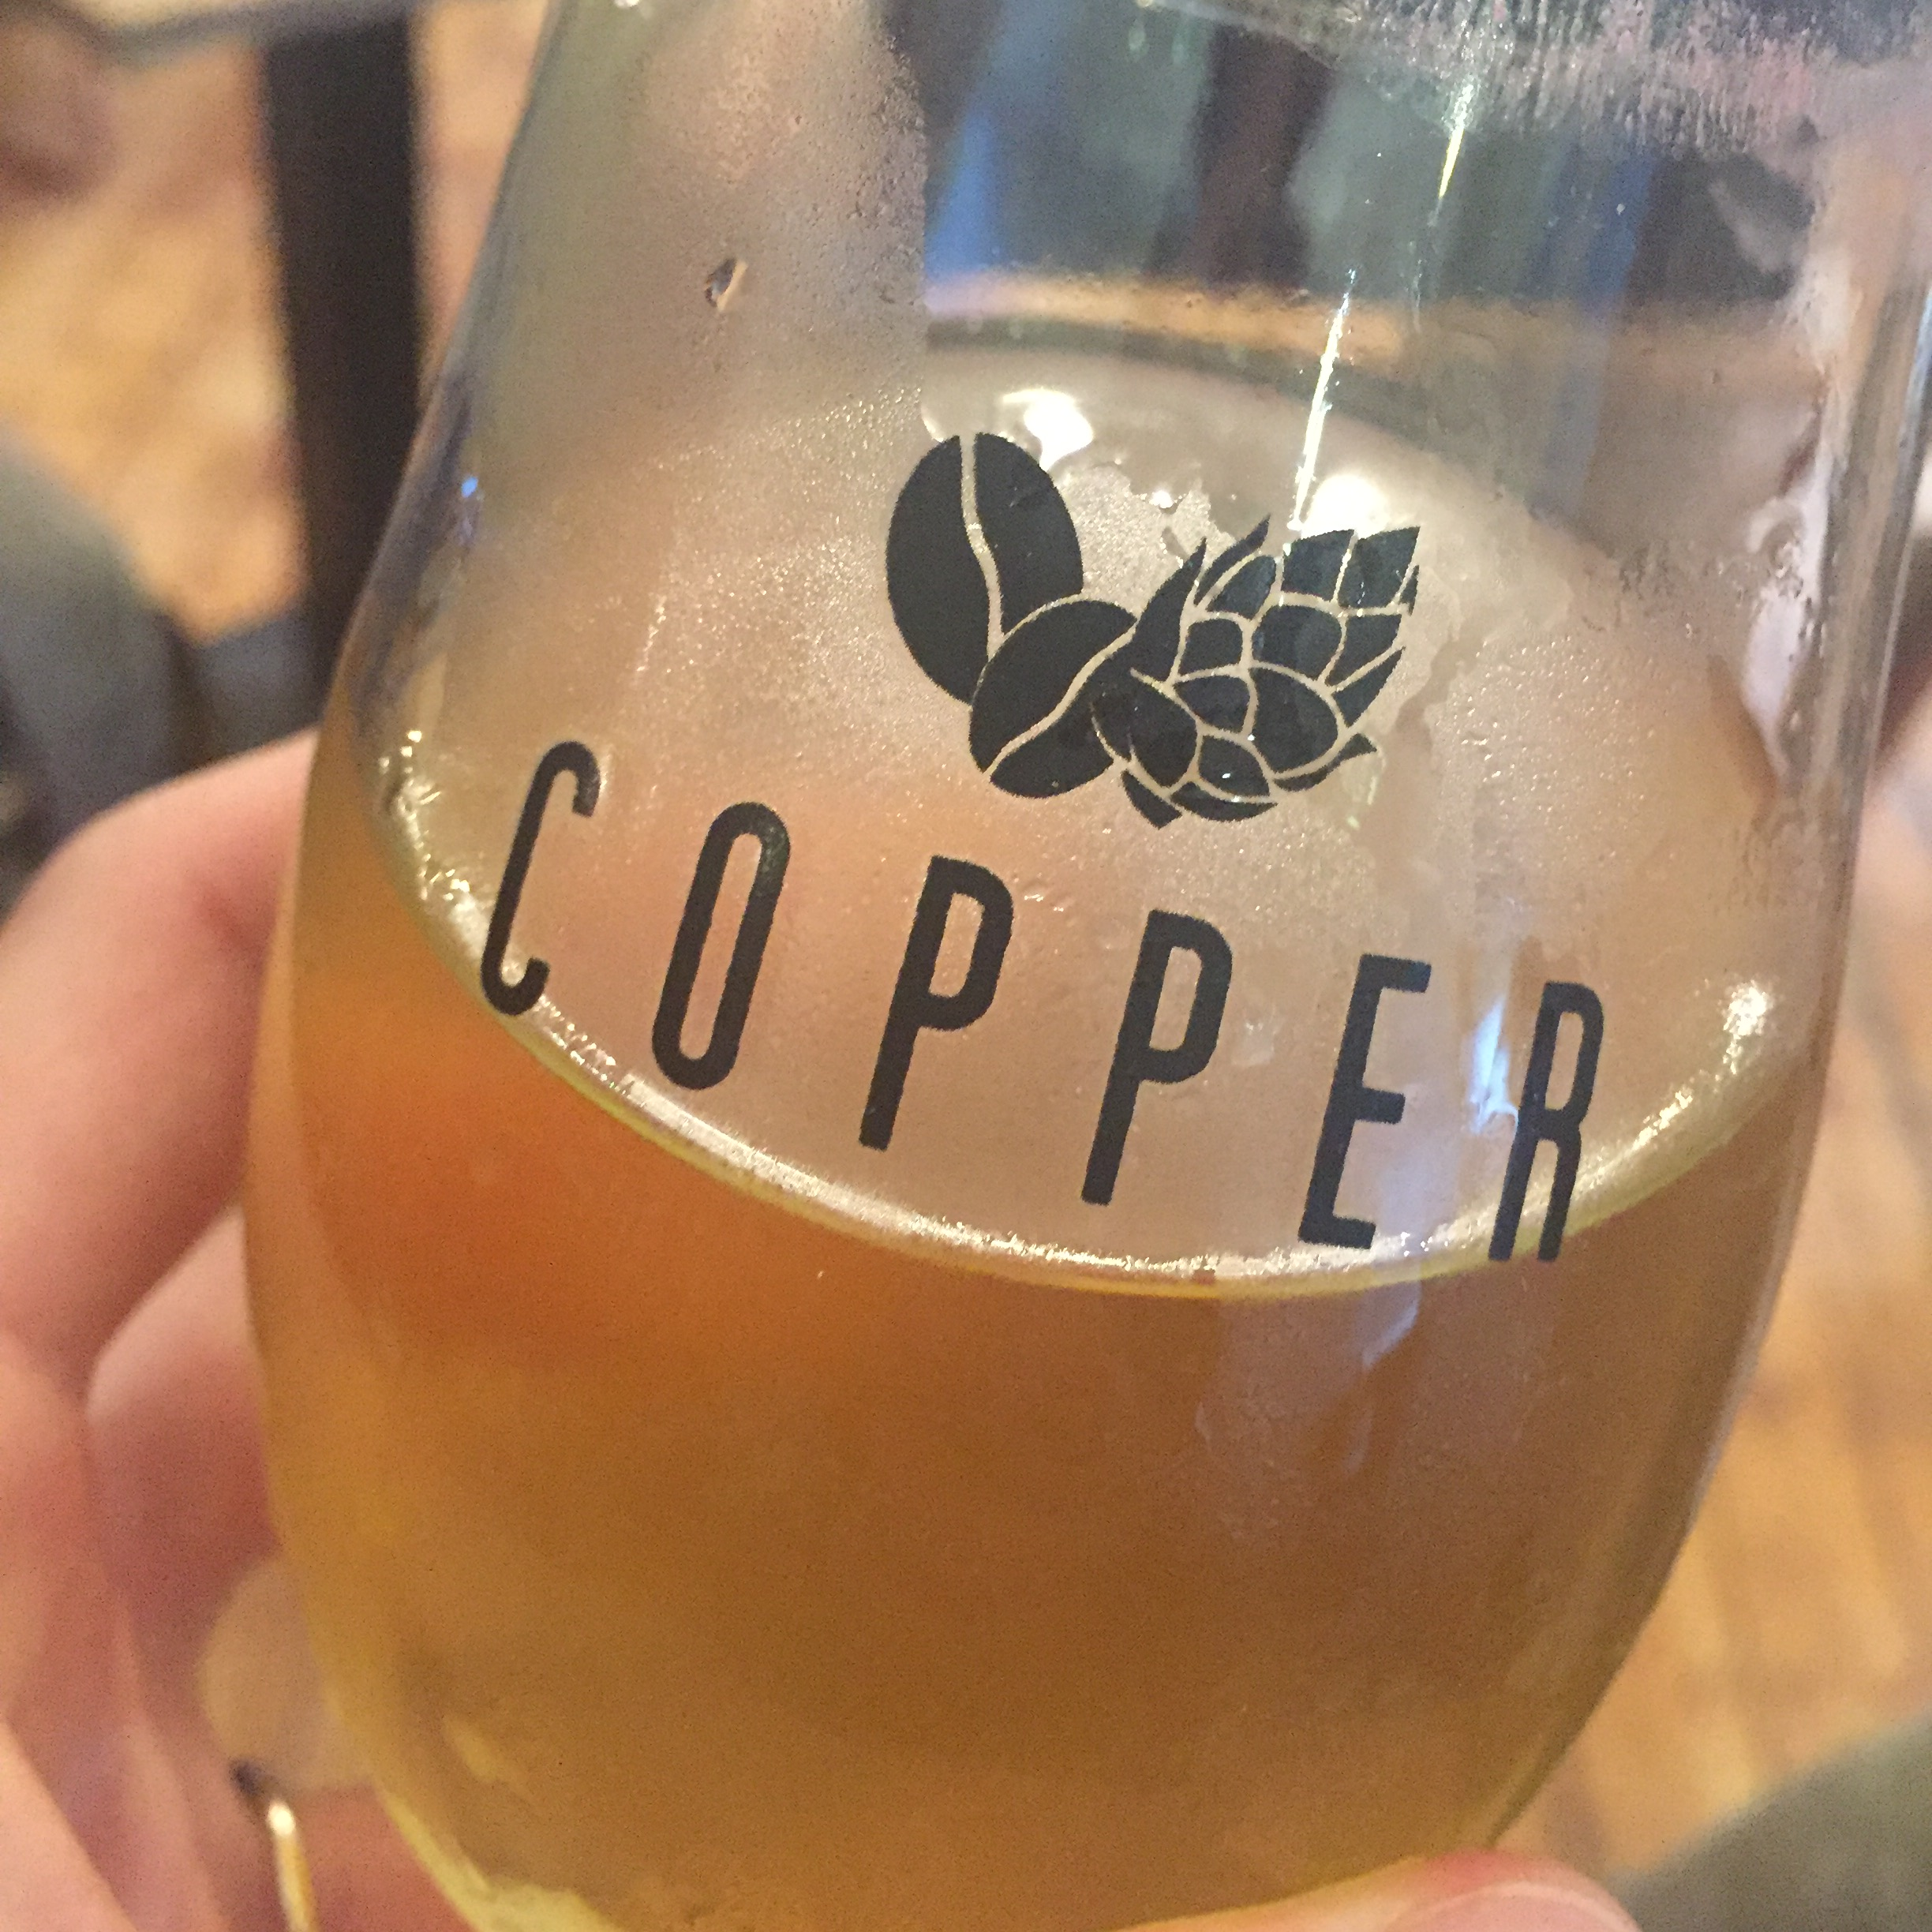 Boss Beer at Copper